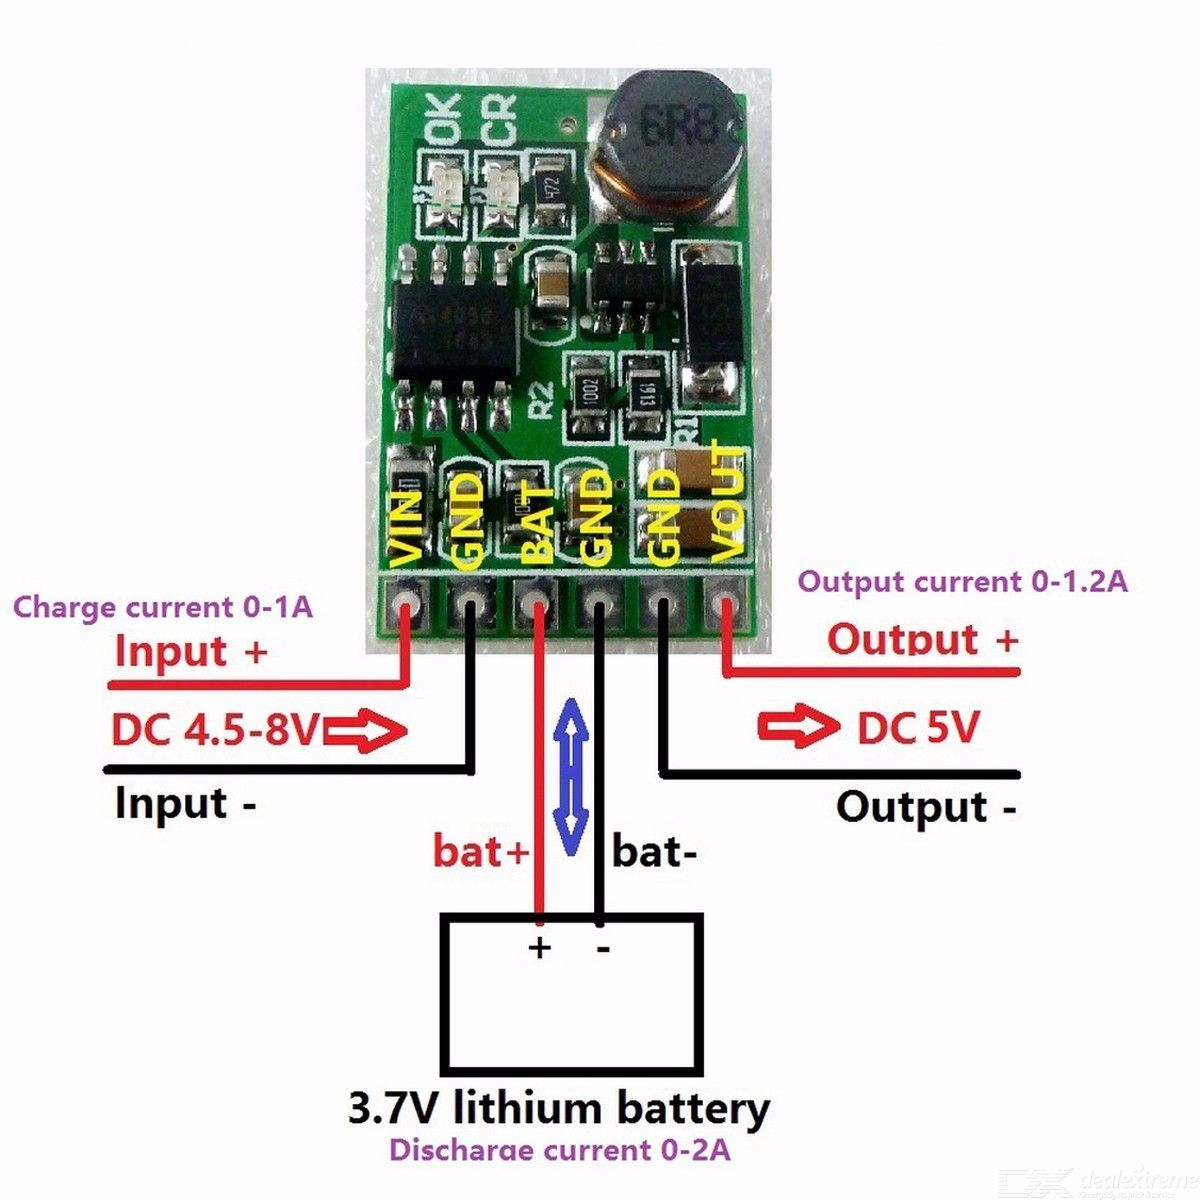 6W 5V UPS Mobile Power DIY Board Charger And Step Up DC Converter Module For 3.7V 18650 Lithium Battery